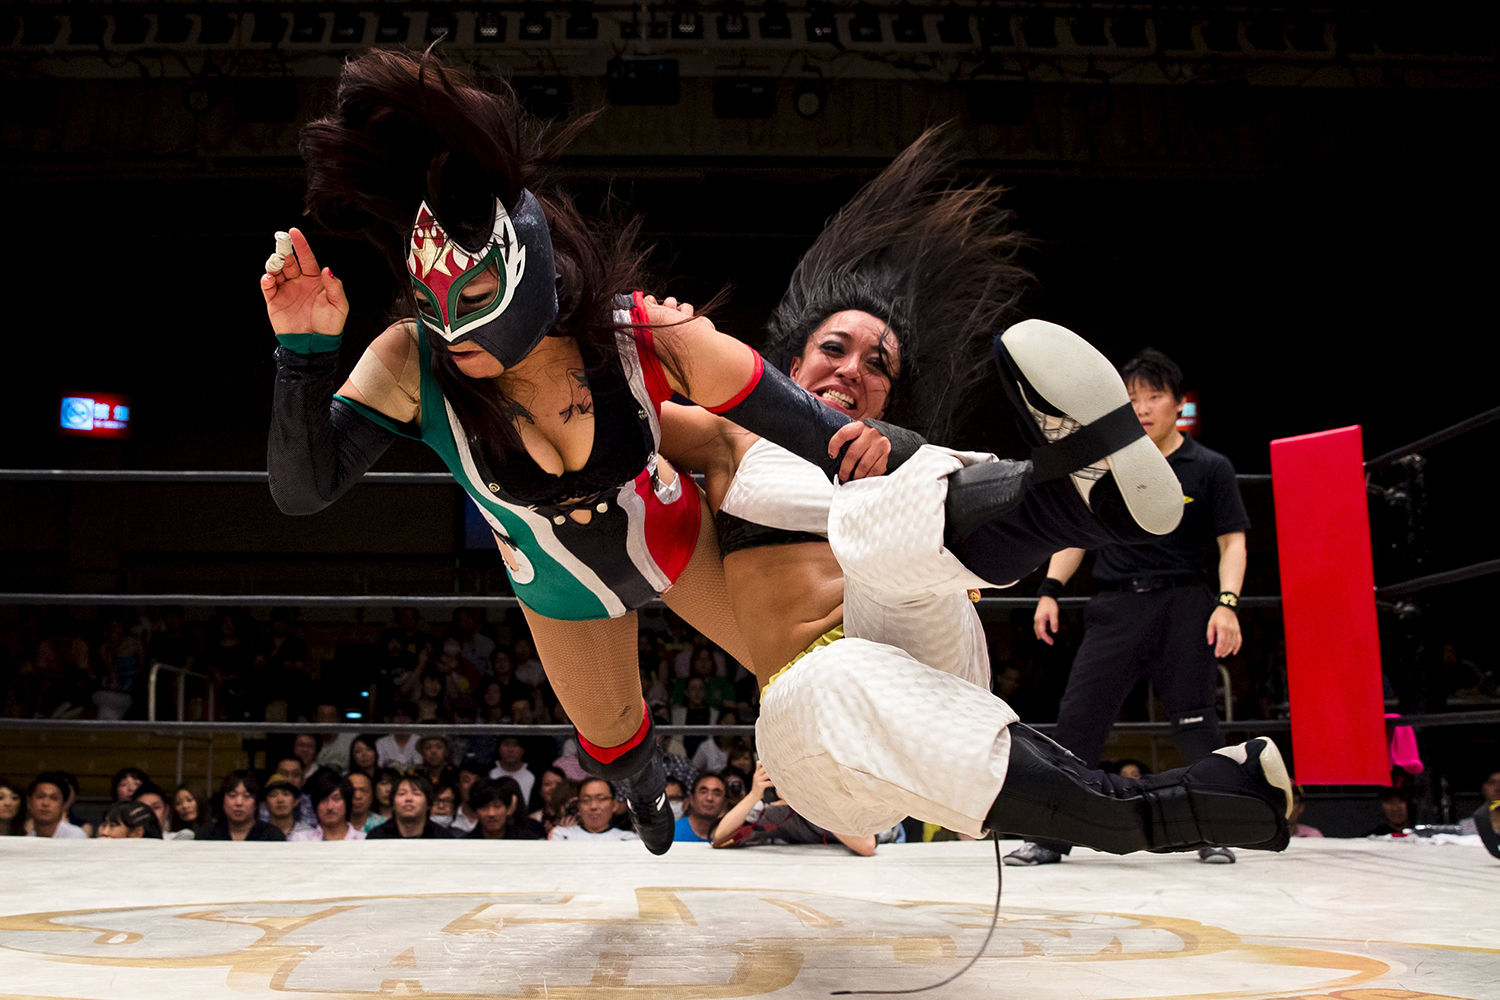 Wrestlers Kris Wolf and Starfire fight during their Stardom professional wrestling show at Korakuen Hall in Tokyo in July 2015. | REUTERS